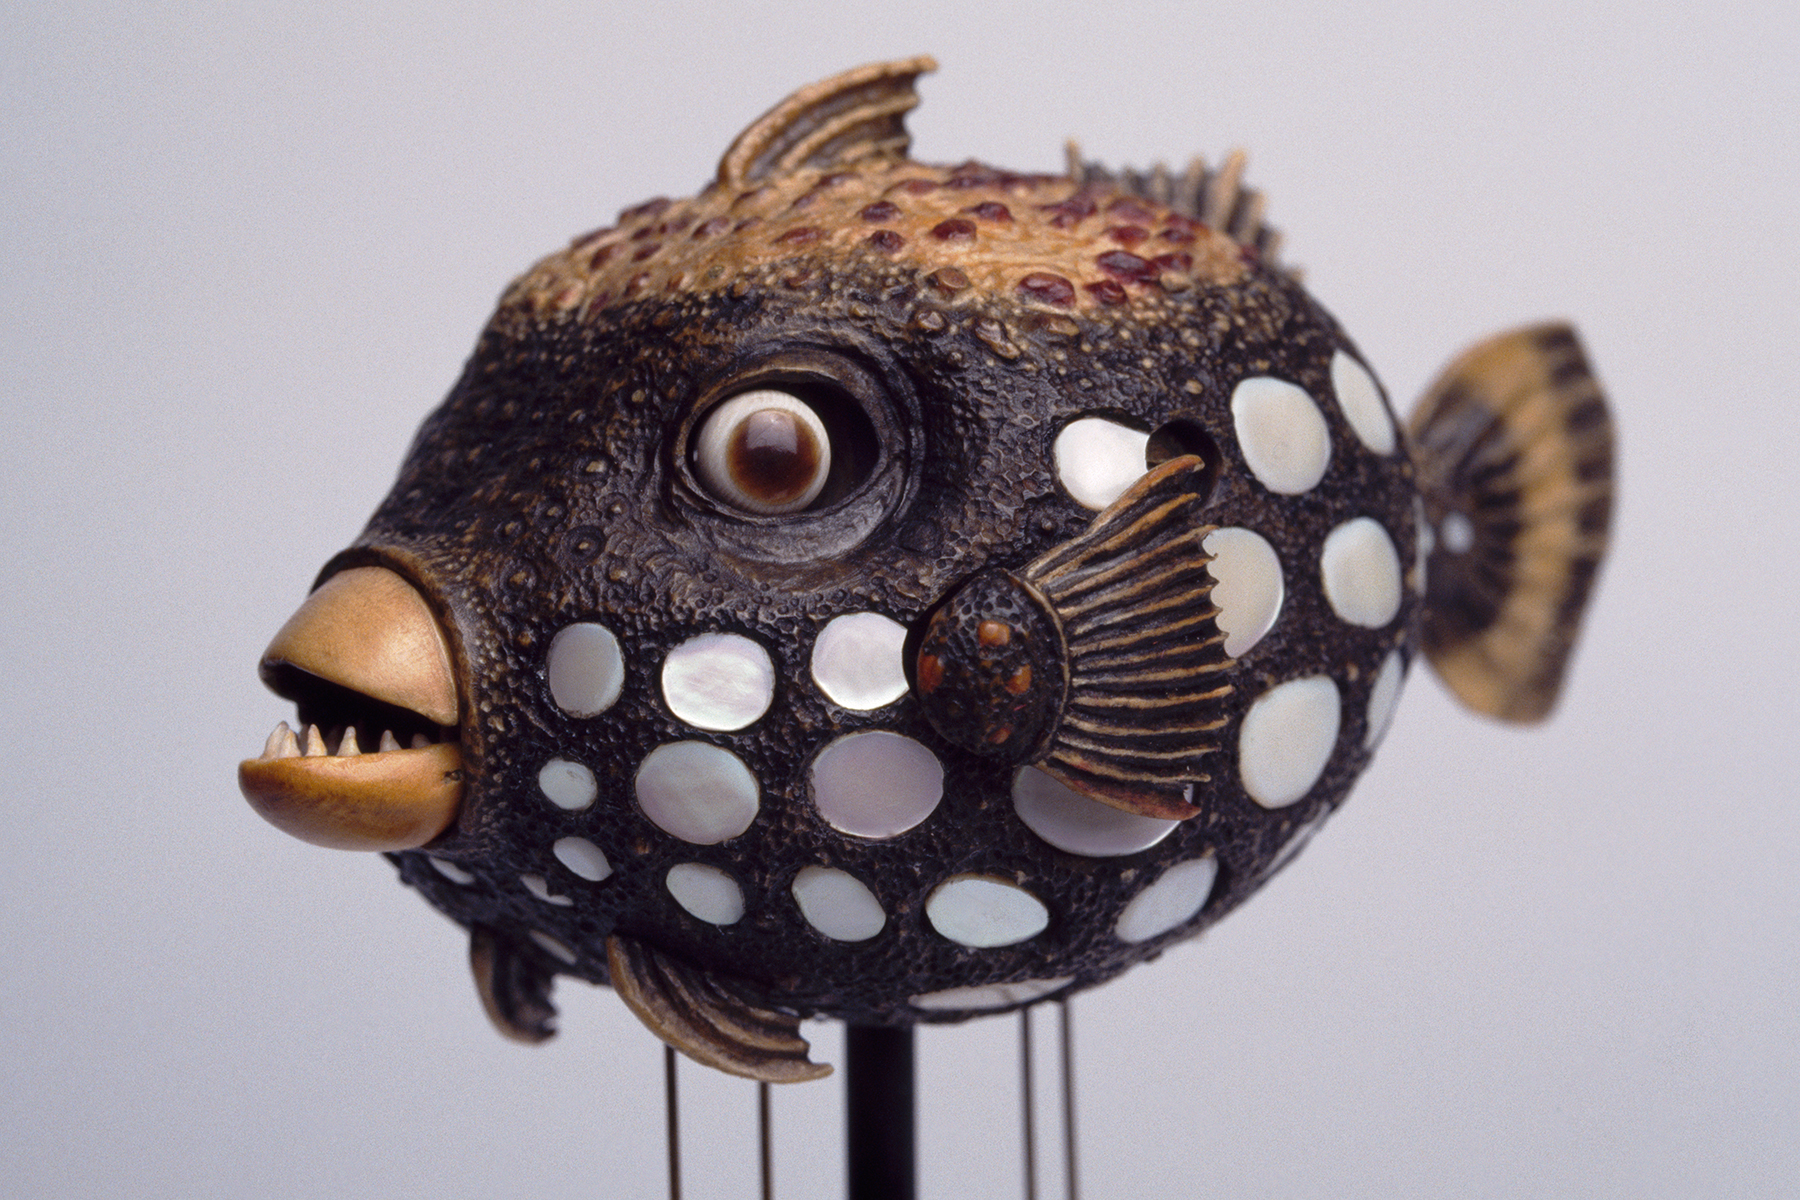 DavidBeck-TriggerFish_35mm_3_web.jpg